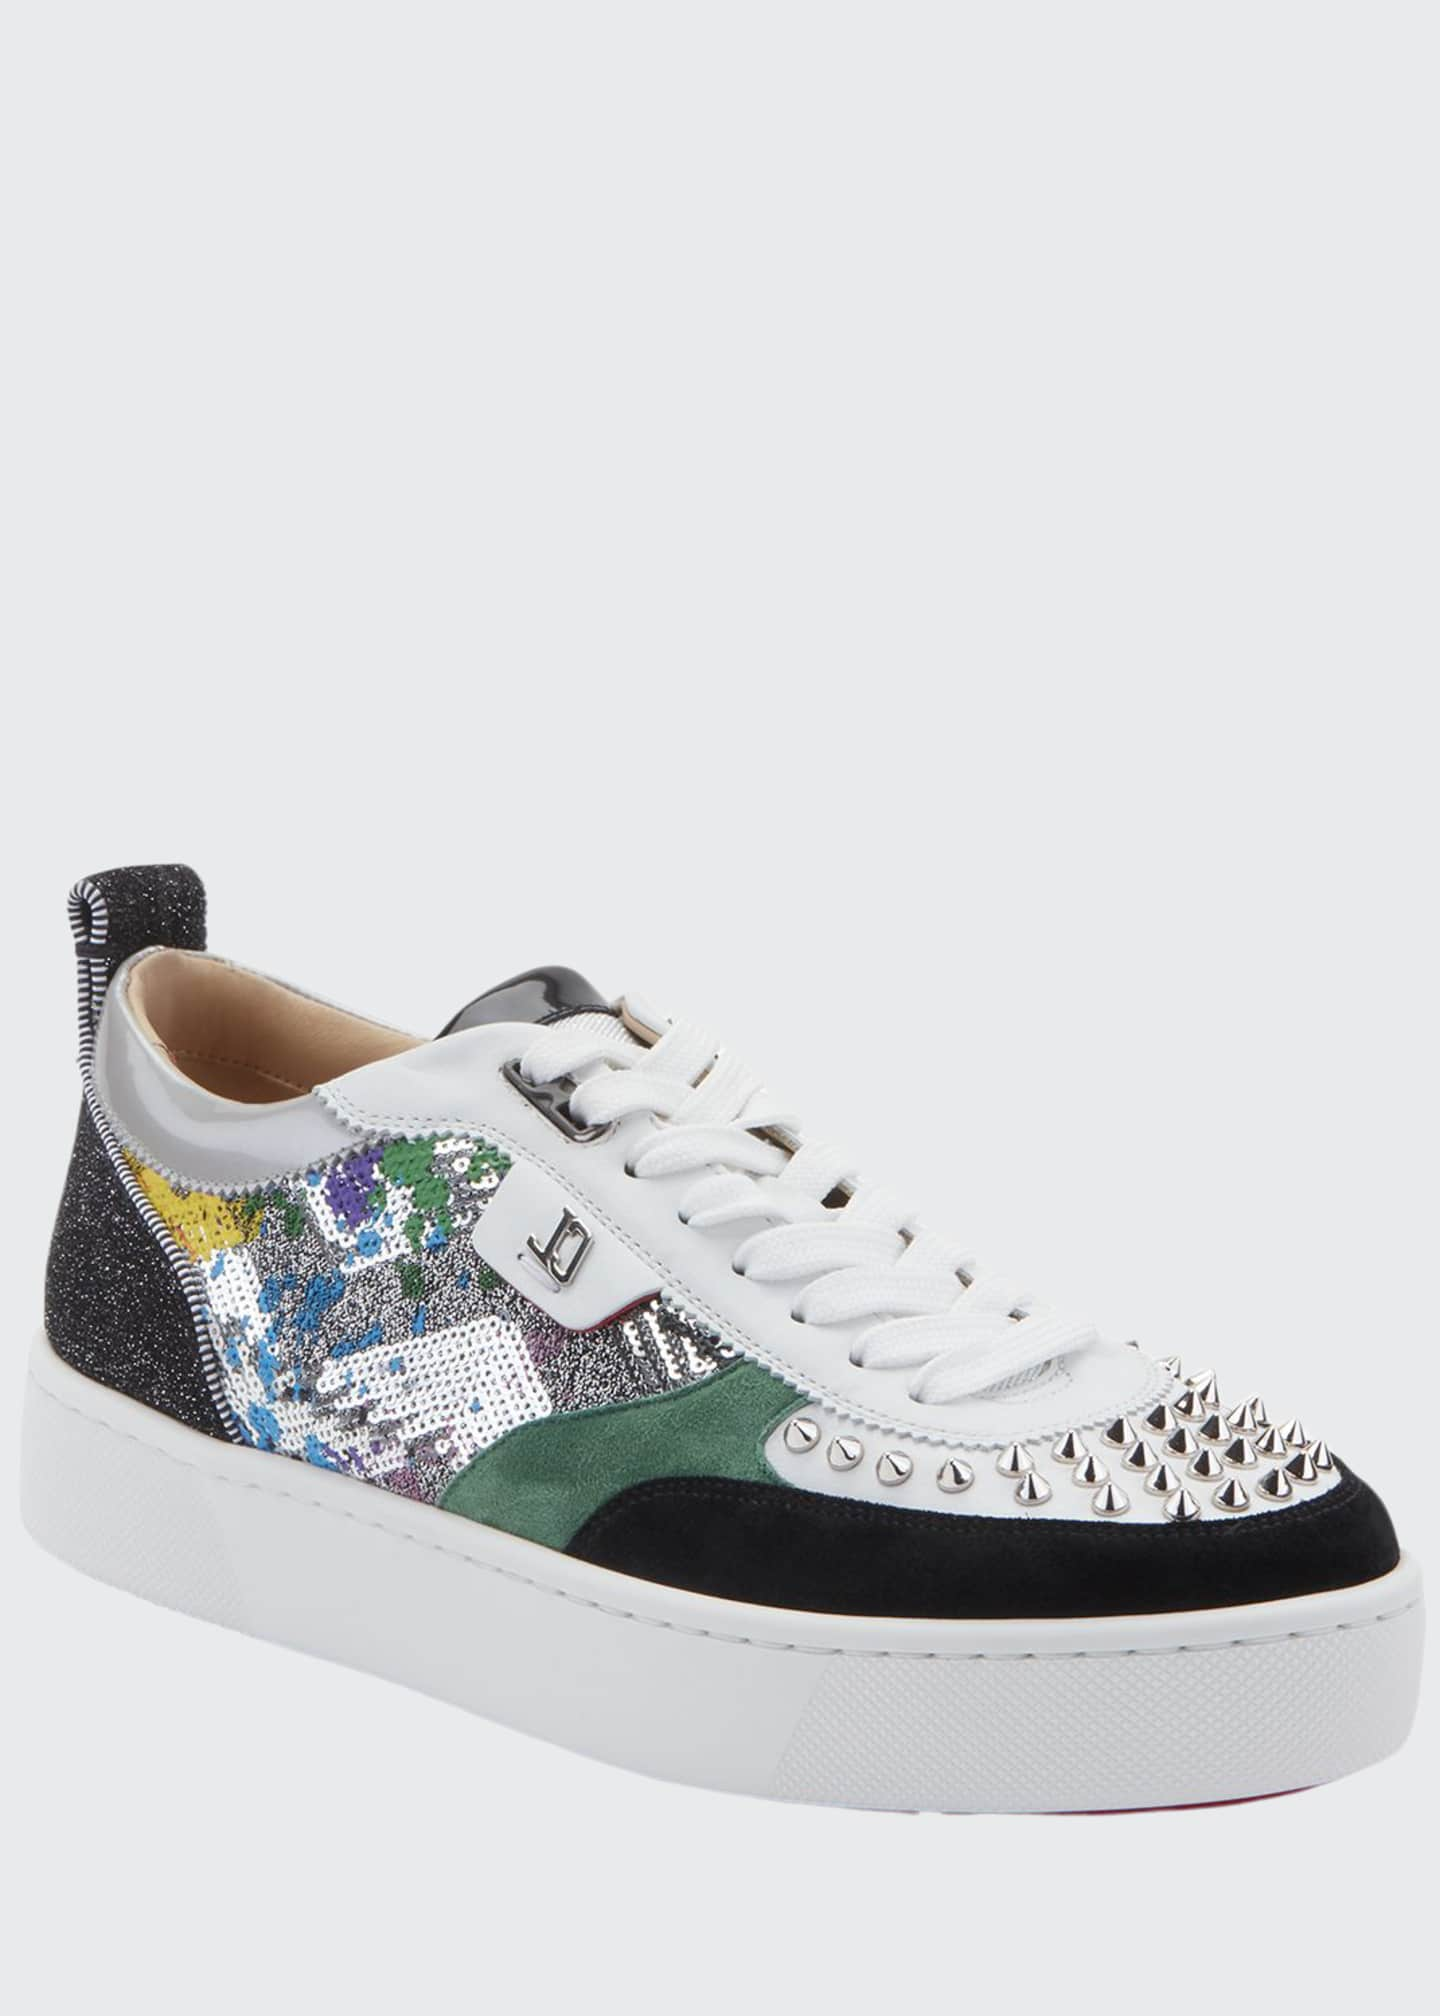 Christian Louboutin Men's Happy Rui Mixed-Media Platform Sneakers